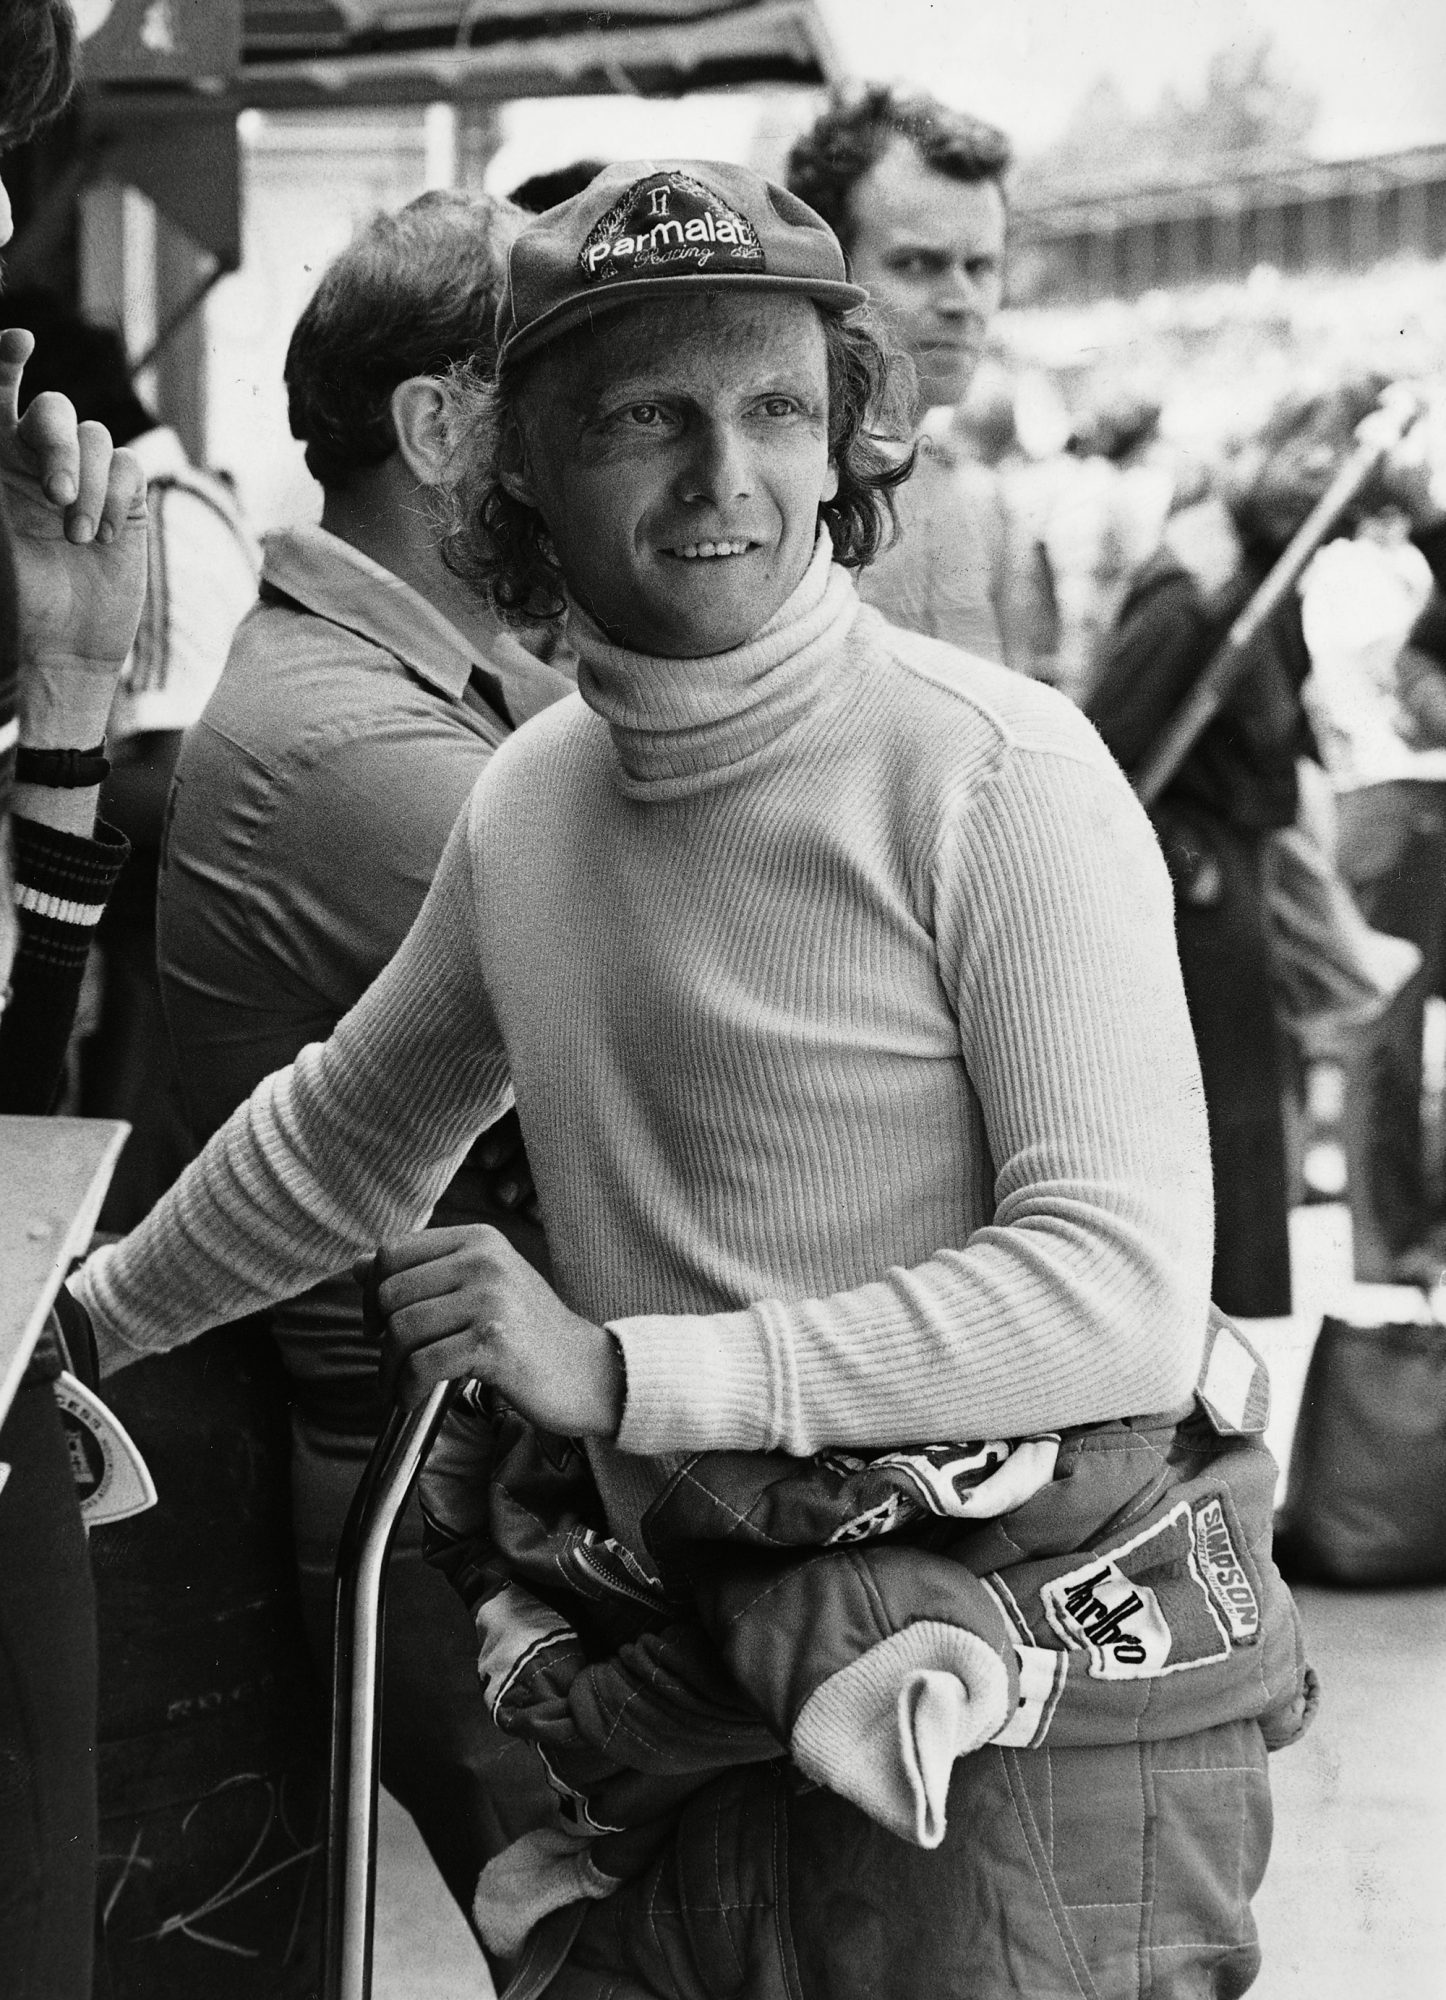 Niki Lauda Finished 4th In The 1978 Championship. Worse Was To Follow With Brabham In A Period Of Decline. The Austrian Ace Would Soon Be Complaining Of A Lack Of Motivation And Questioning His Future In The Sport. 7/78